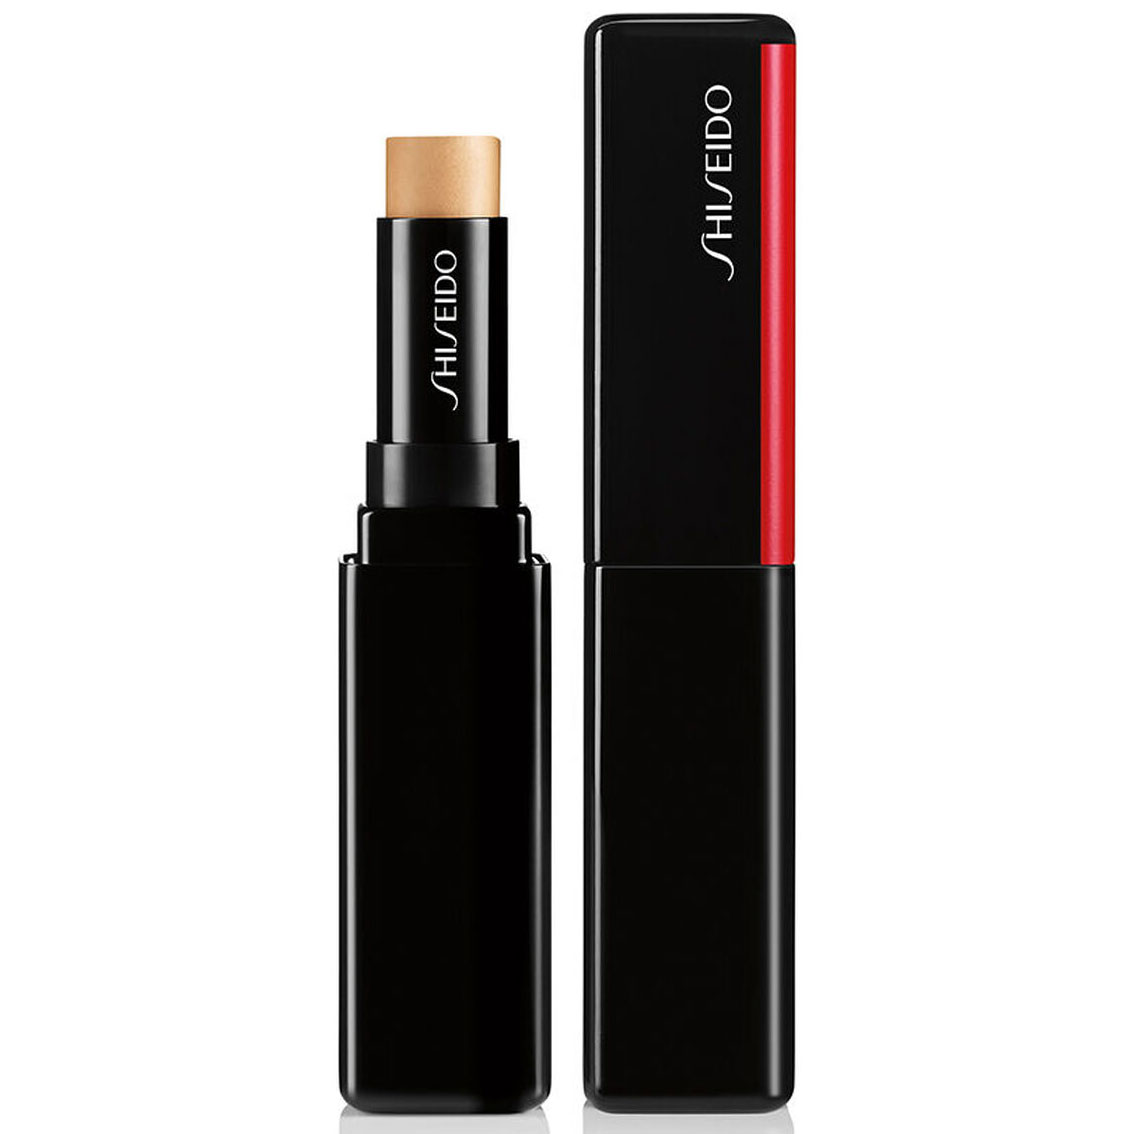 Shiseido Synchro Skin Correcting Gel Stick Concealer n. 202 light